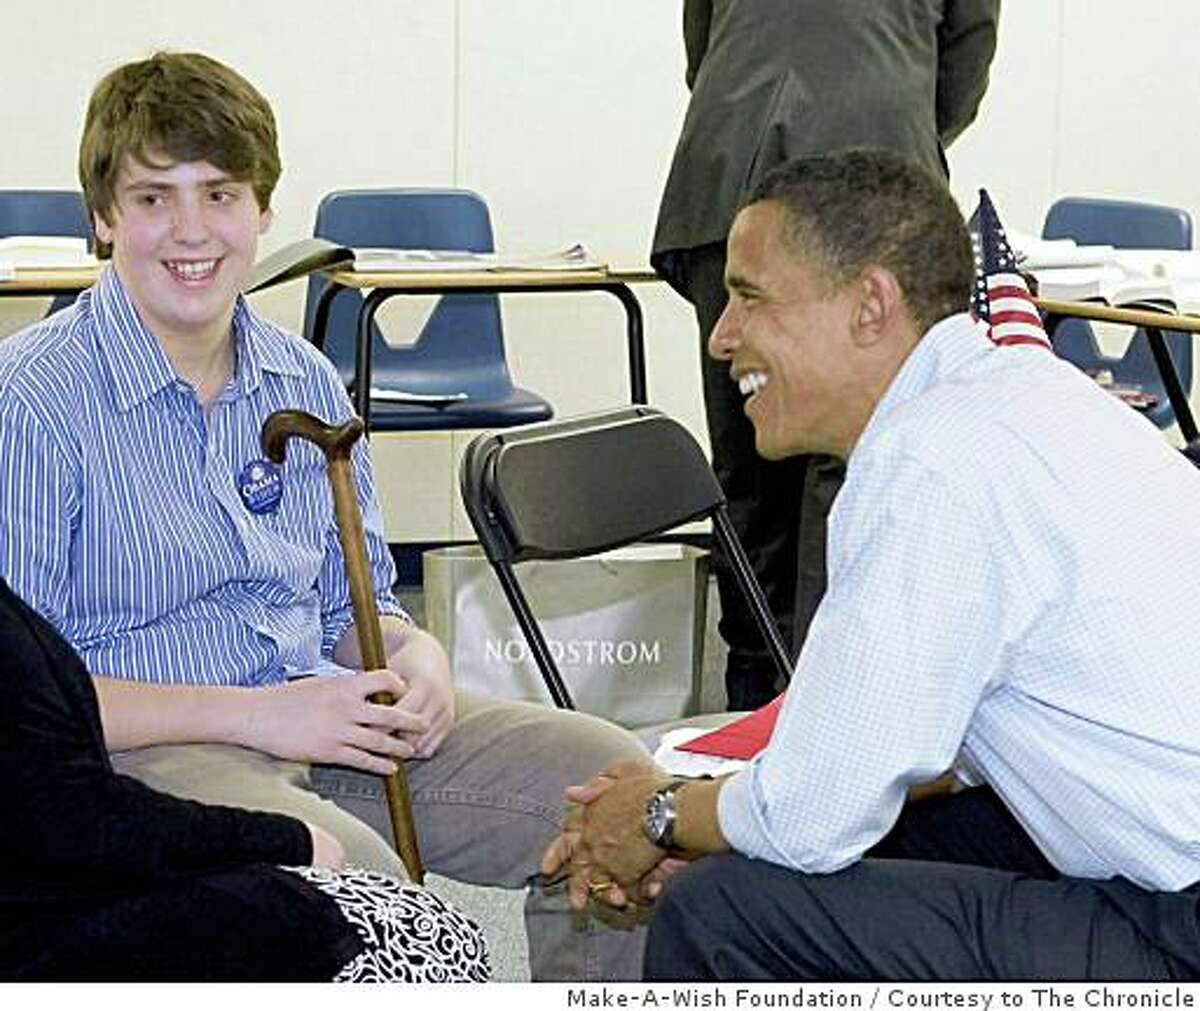 James Rowcliffe Kessler's wish with the Make-A-Wish Foundation was to meet Sen. Barack Obama. He got his wish in Henderson, Nv.